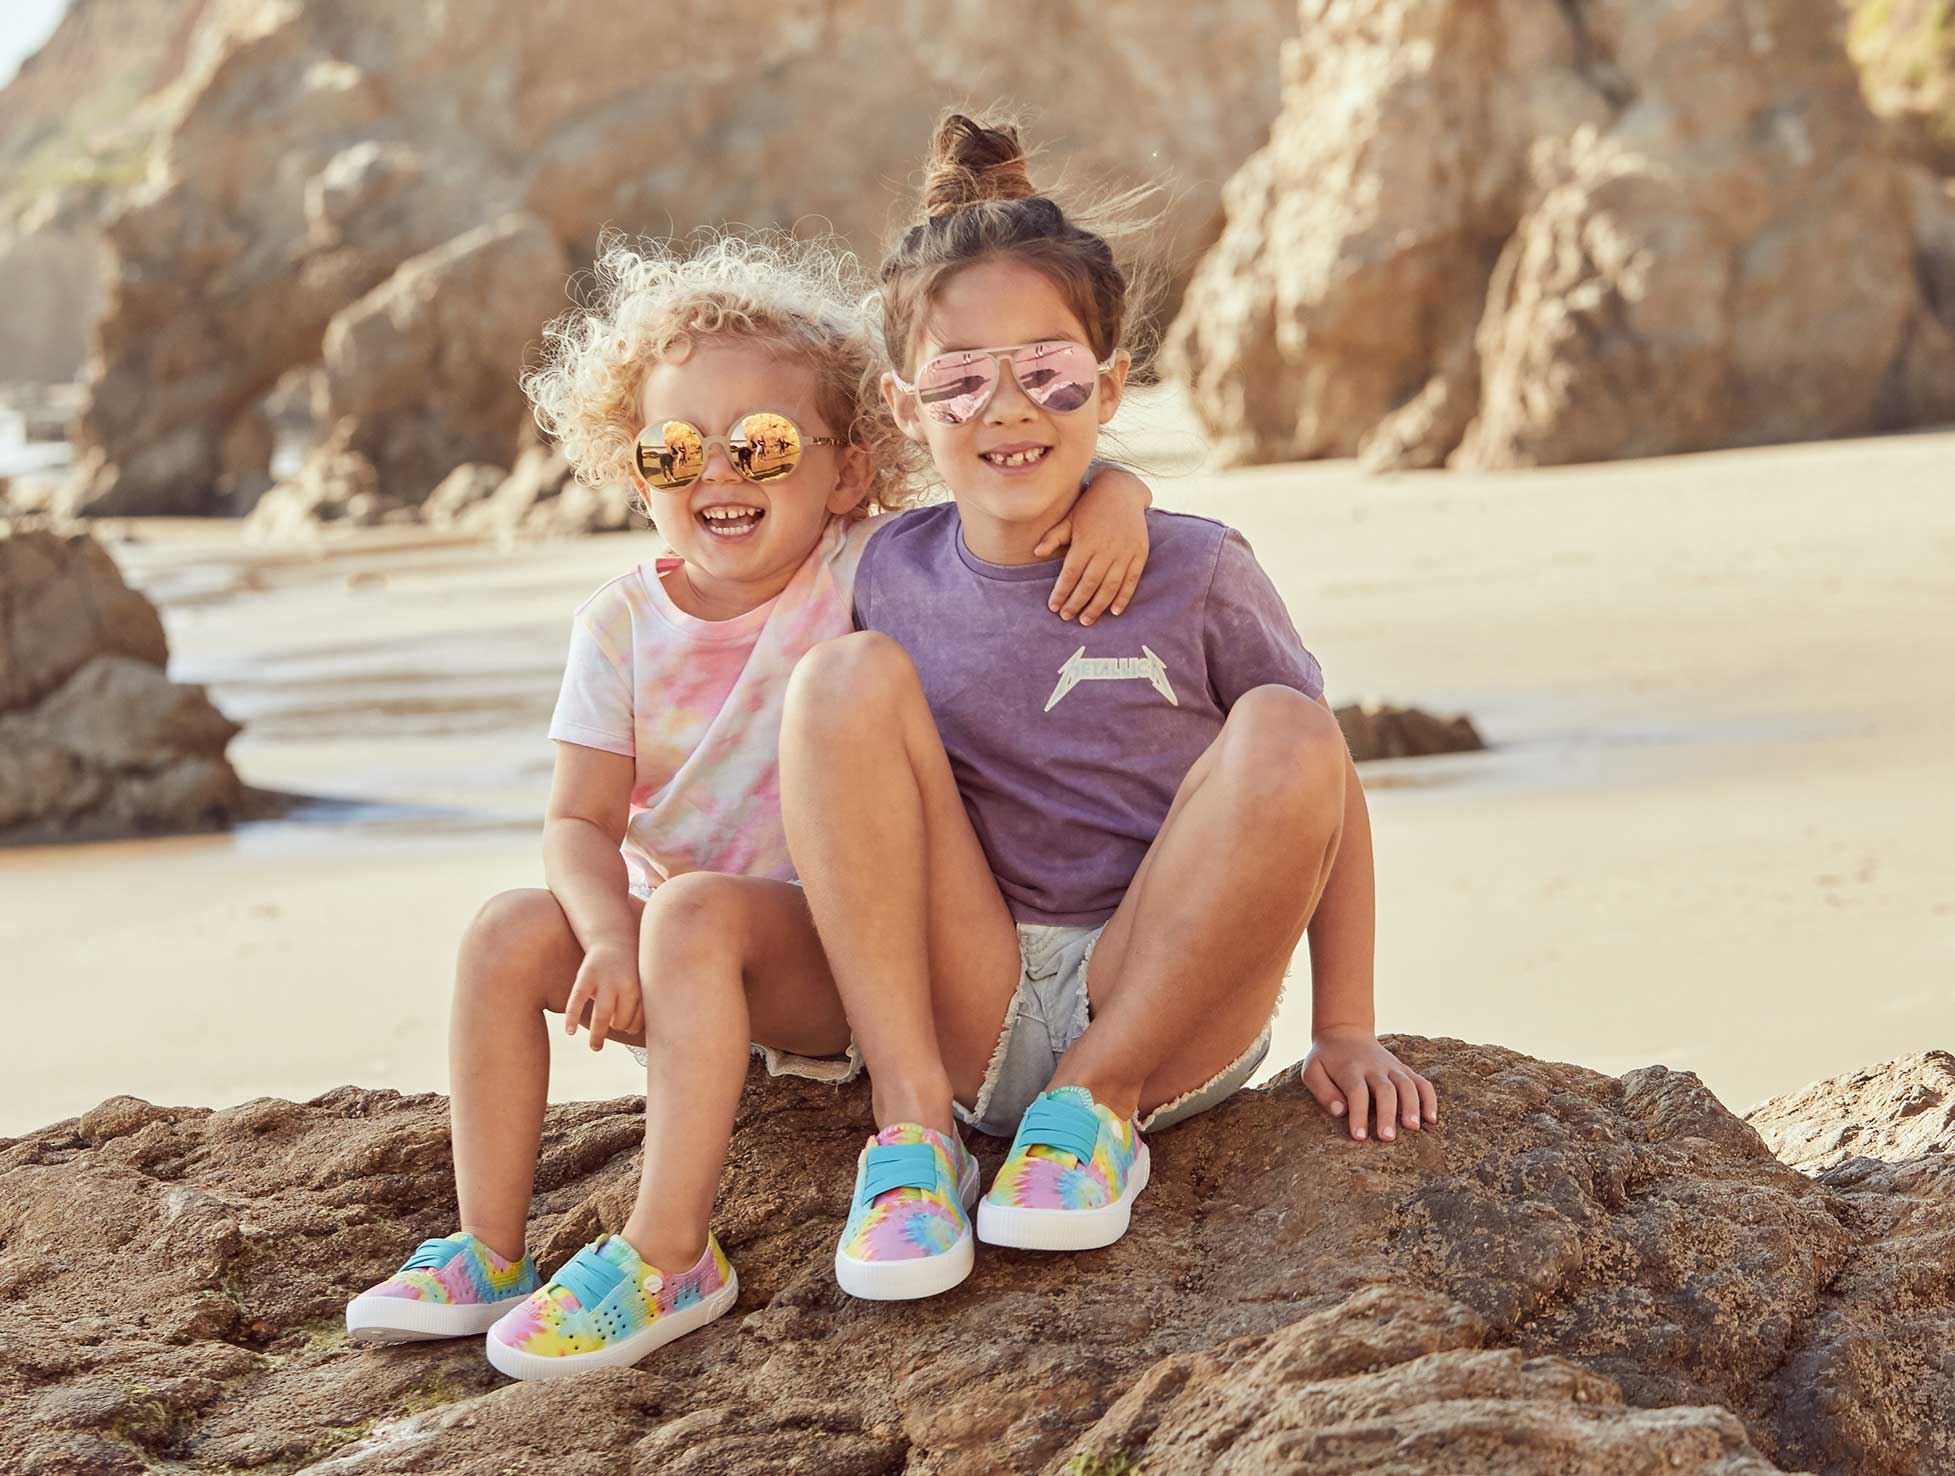 https://blowfishshoes.com/wp-content/uploads/2020/03/Kids-and-Toddlers-Collection-Header.jpg